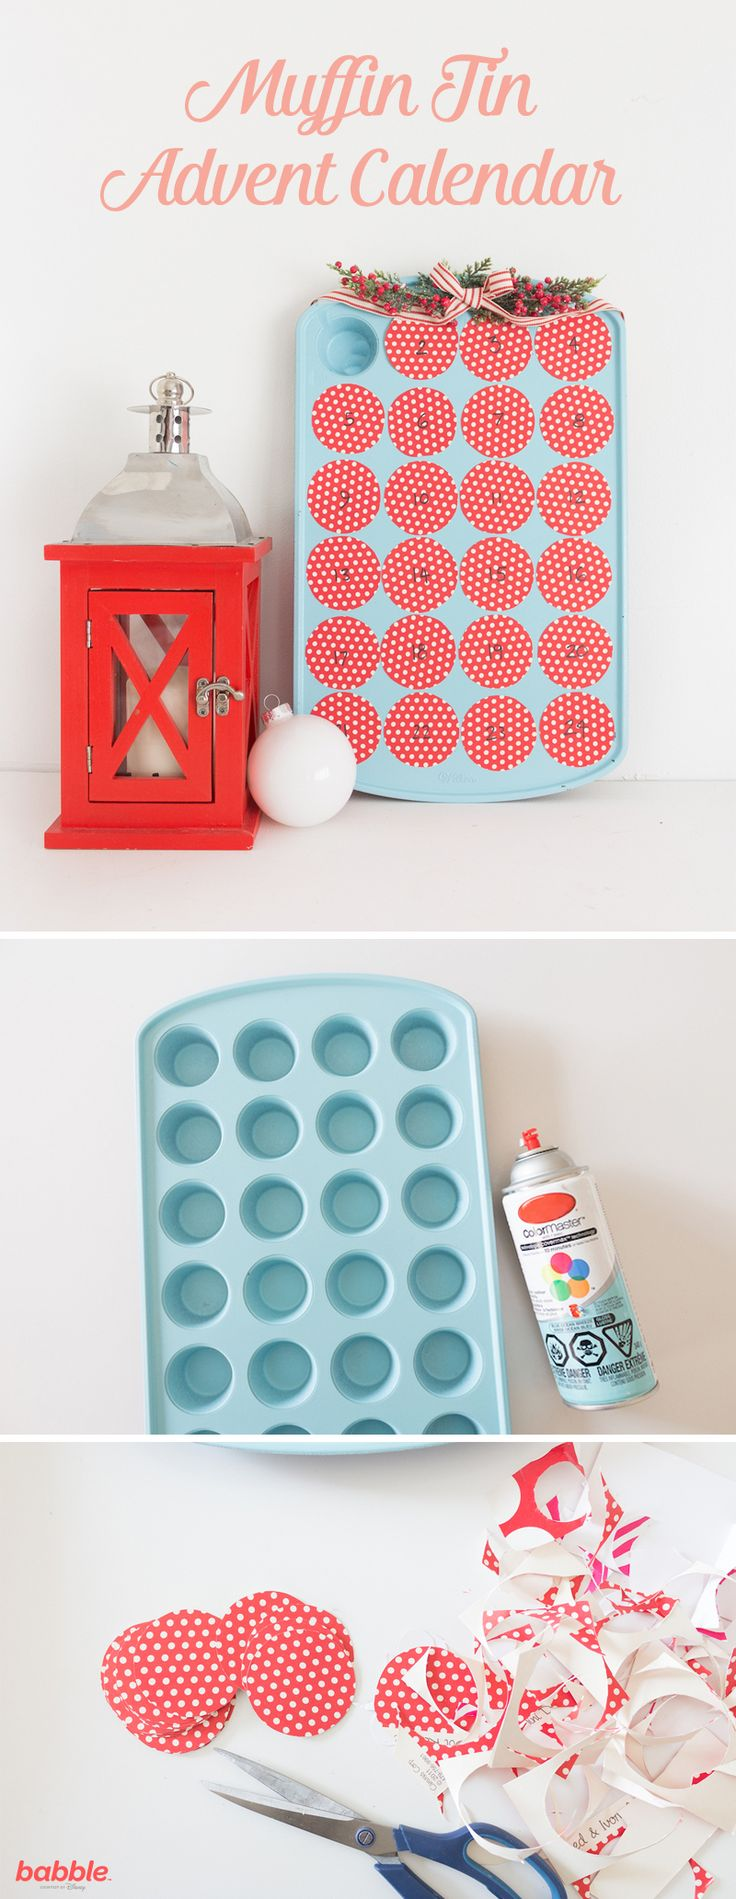 Diy Advent Calendar Muffin Tin : Best homemade advent calendars ideas on pinterest